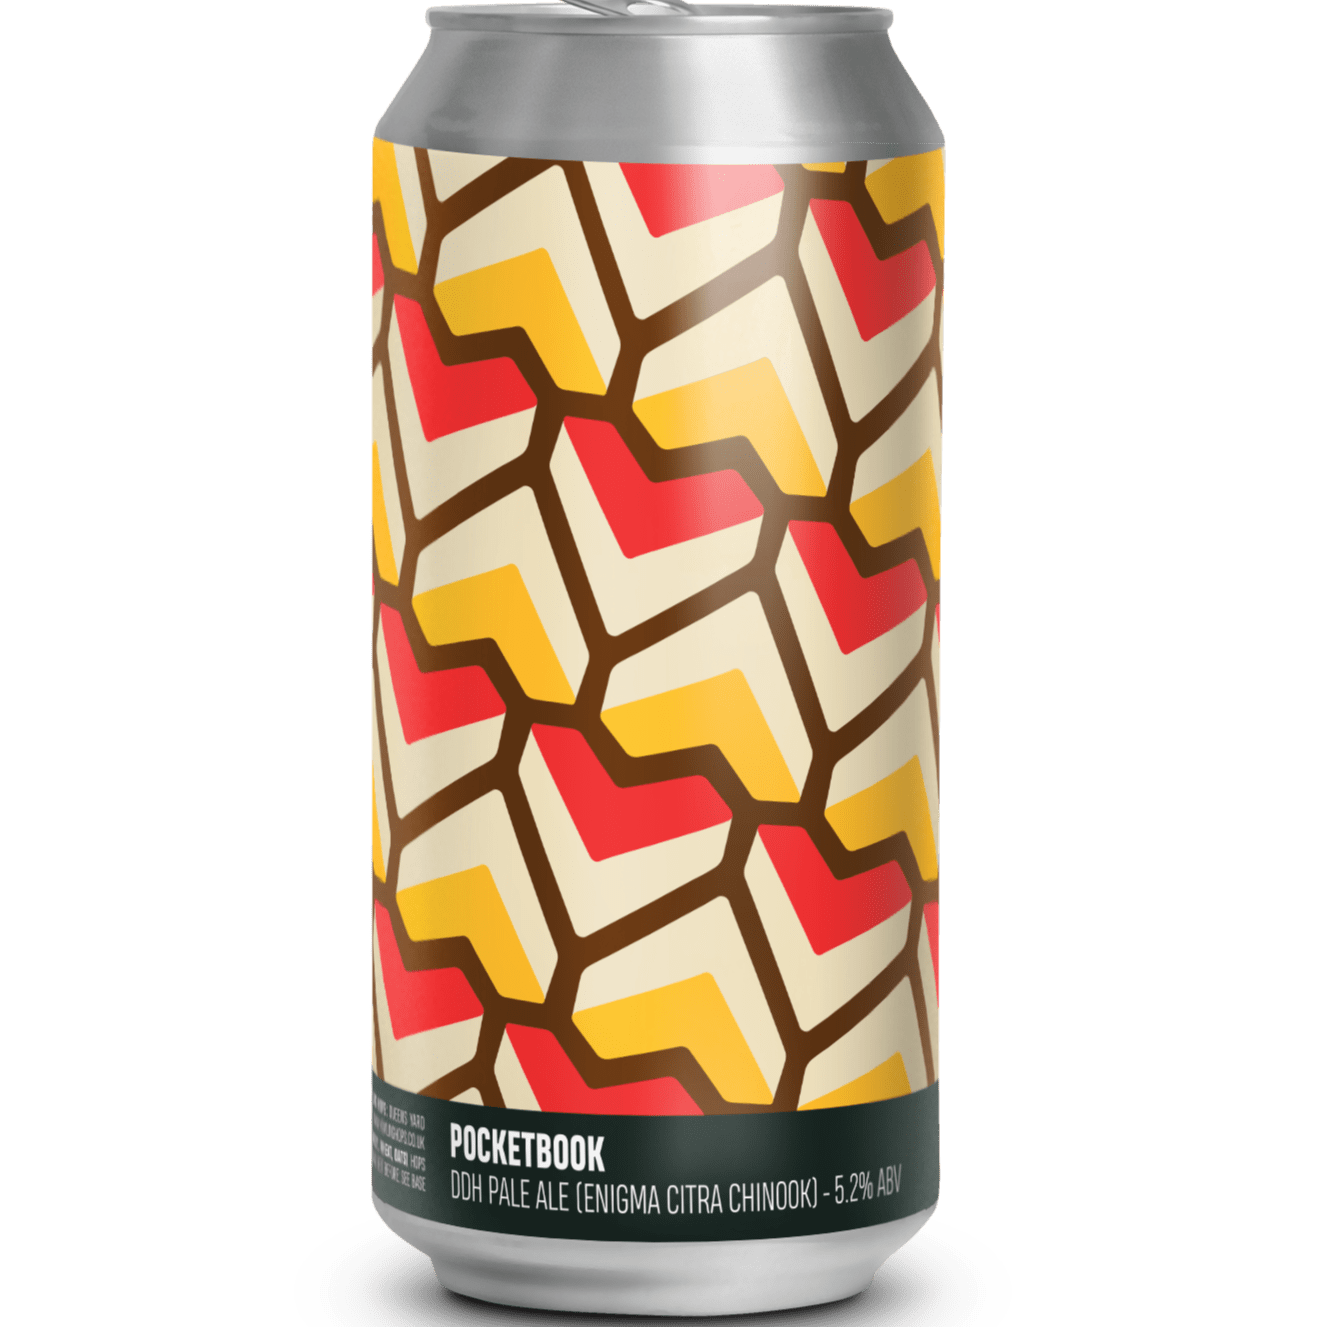 Howling Hops Pocketbook DDH Pale Ale 440ml (5.2%)